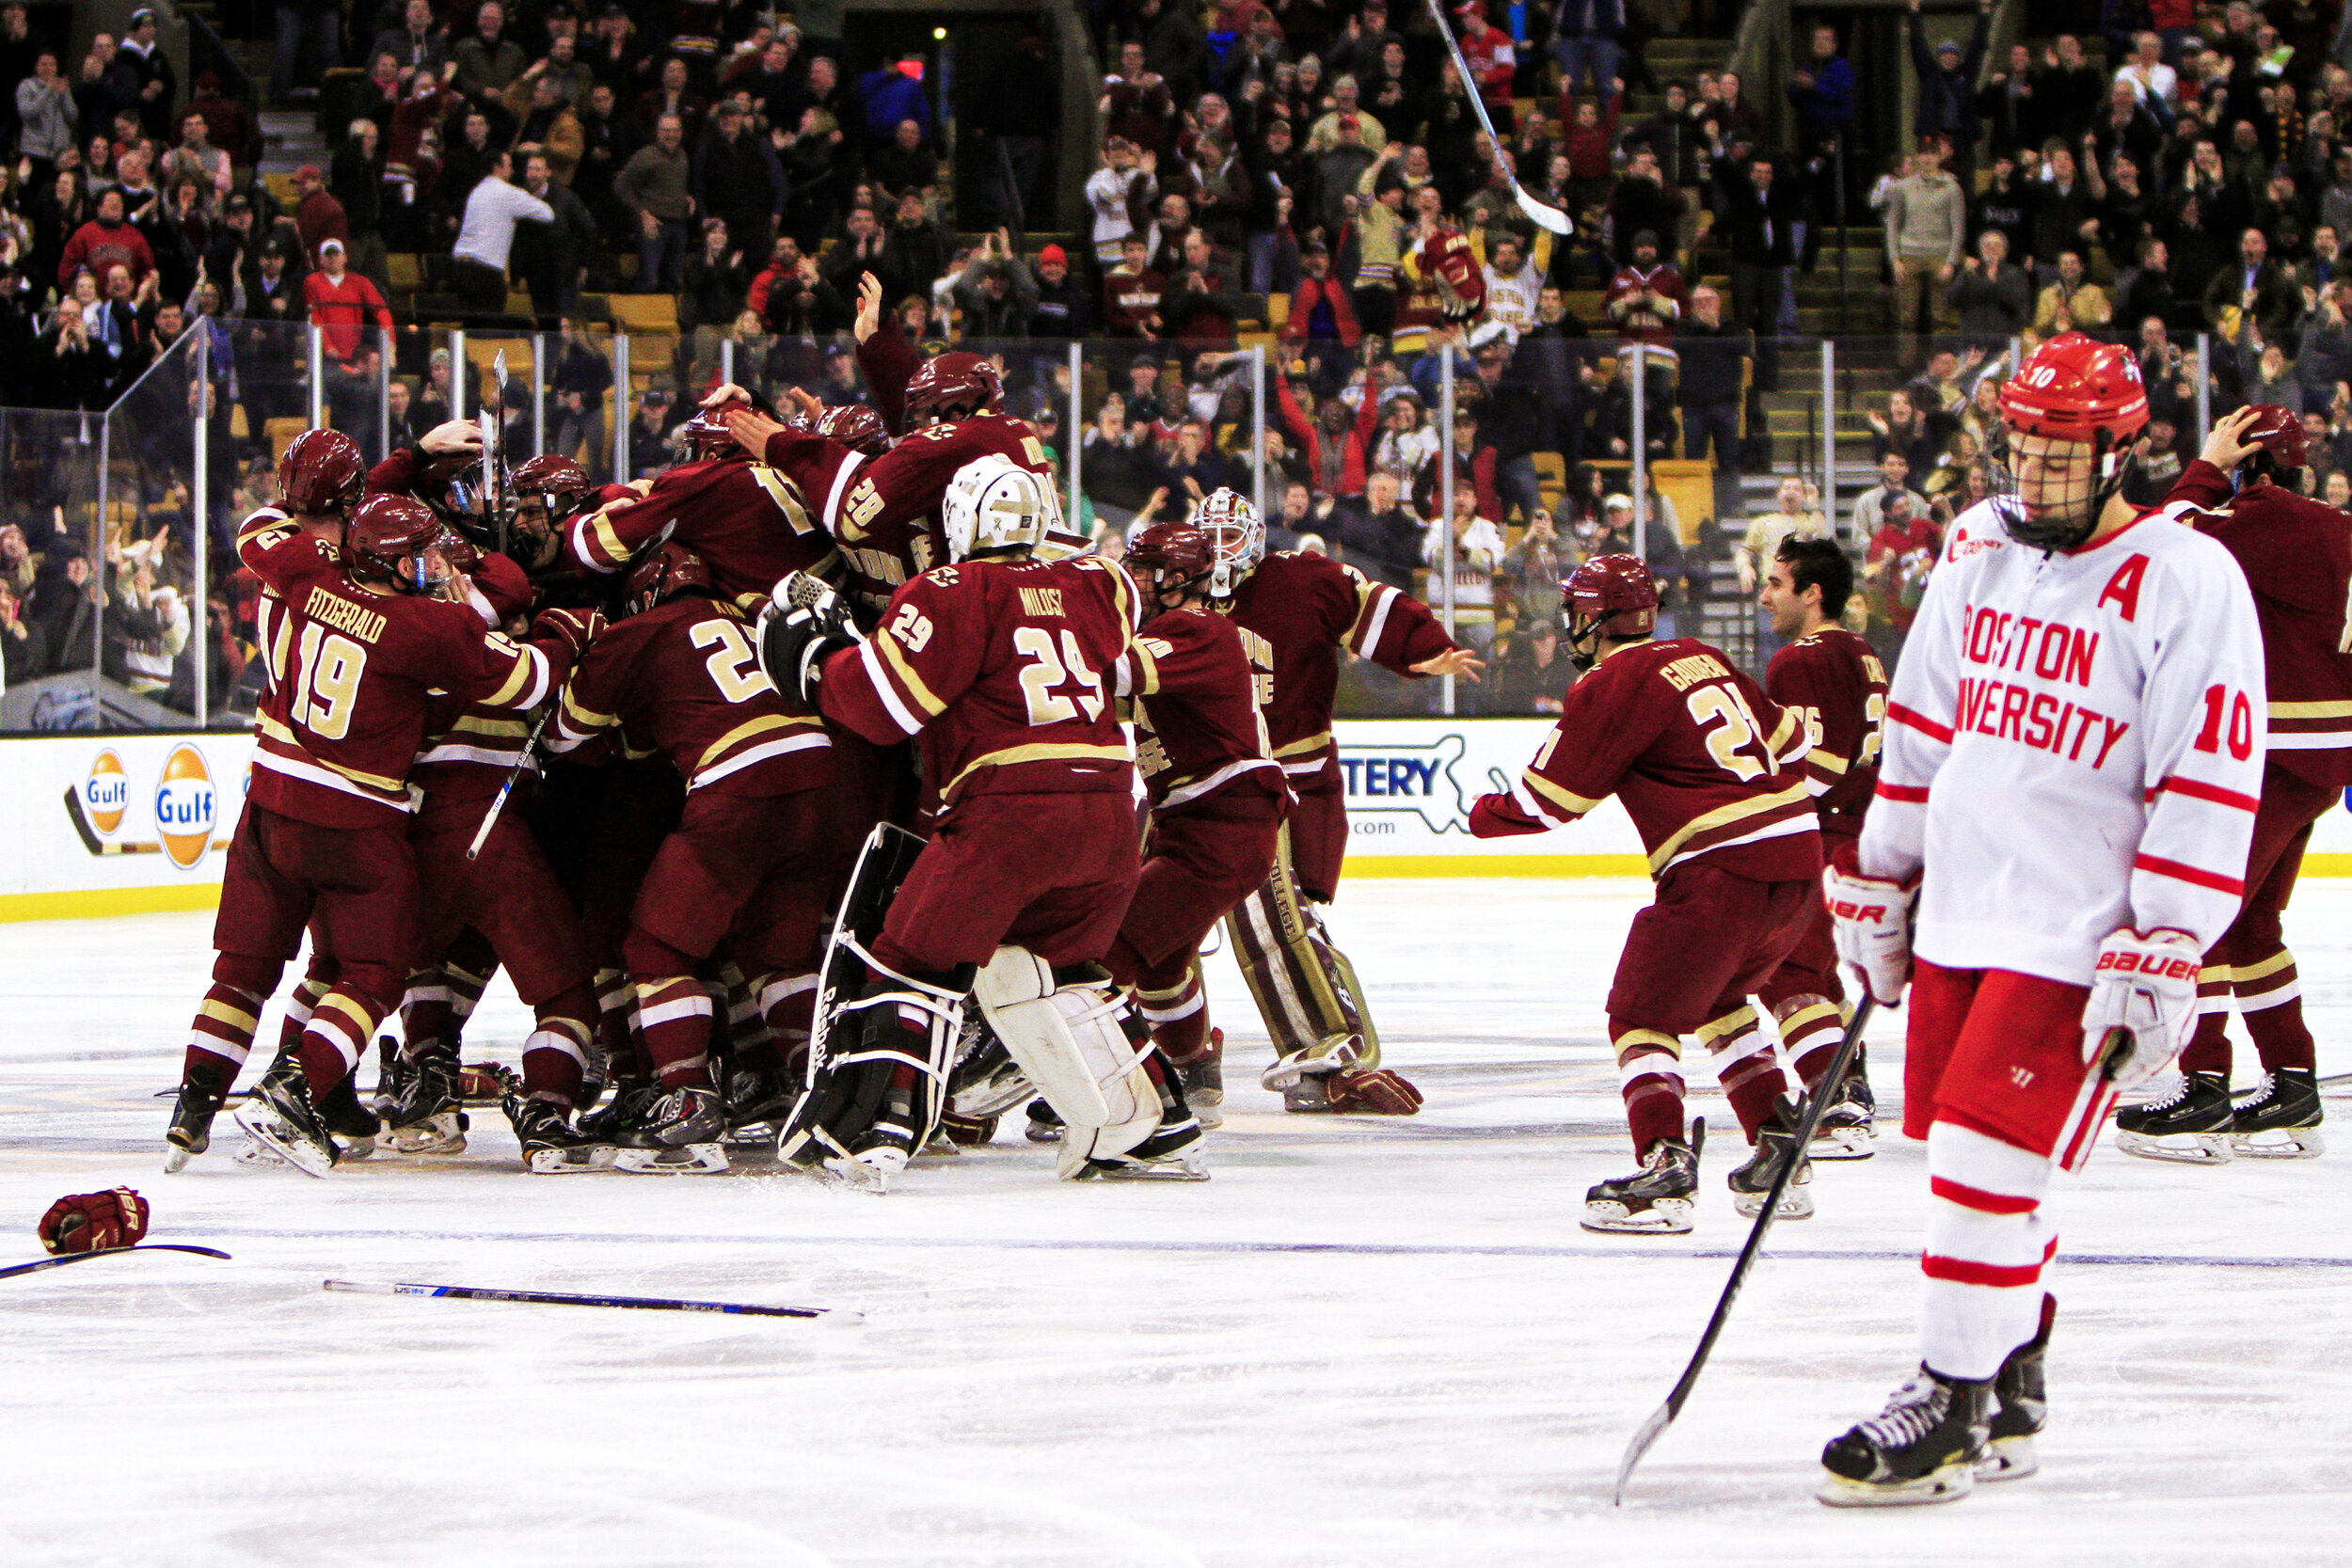 Boston College Men's Hockey took the 2016 Beanpot championship title after an overtime goal against the Boston University Terriers.